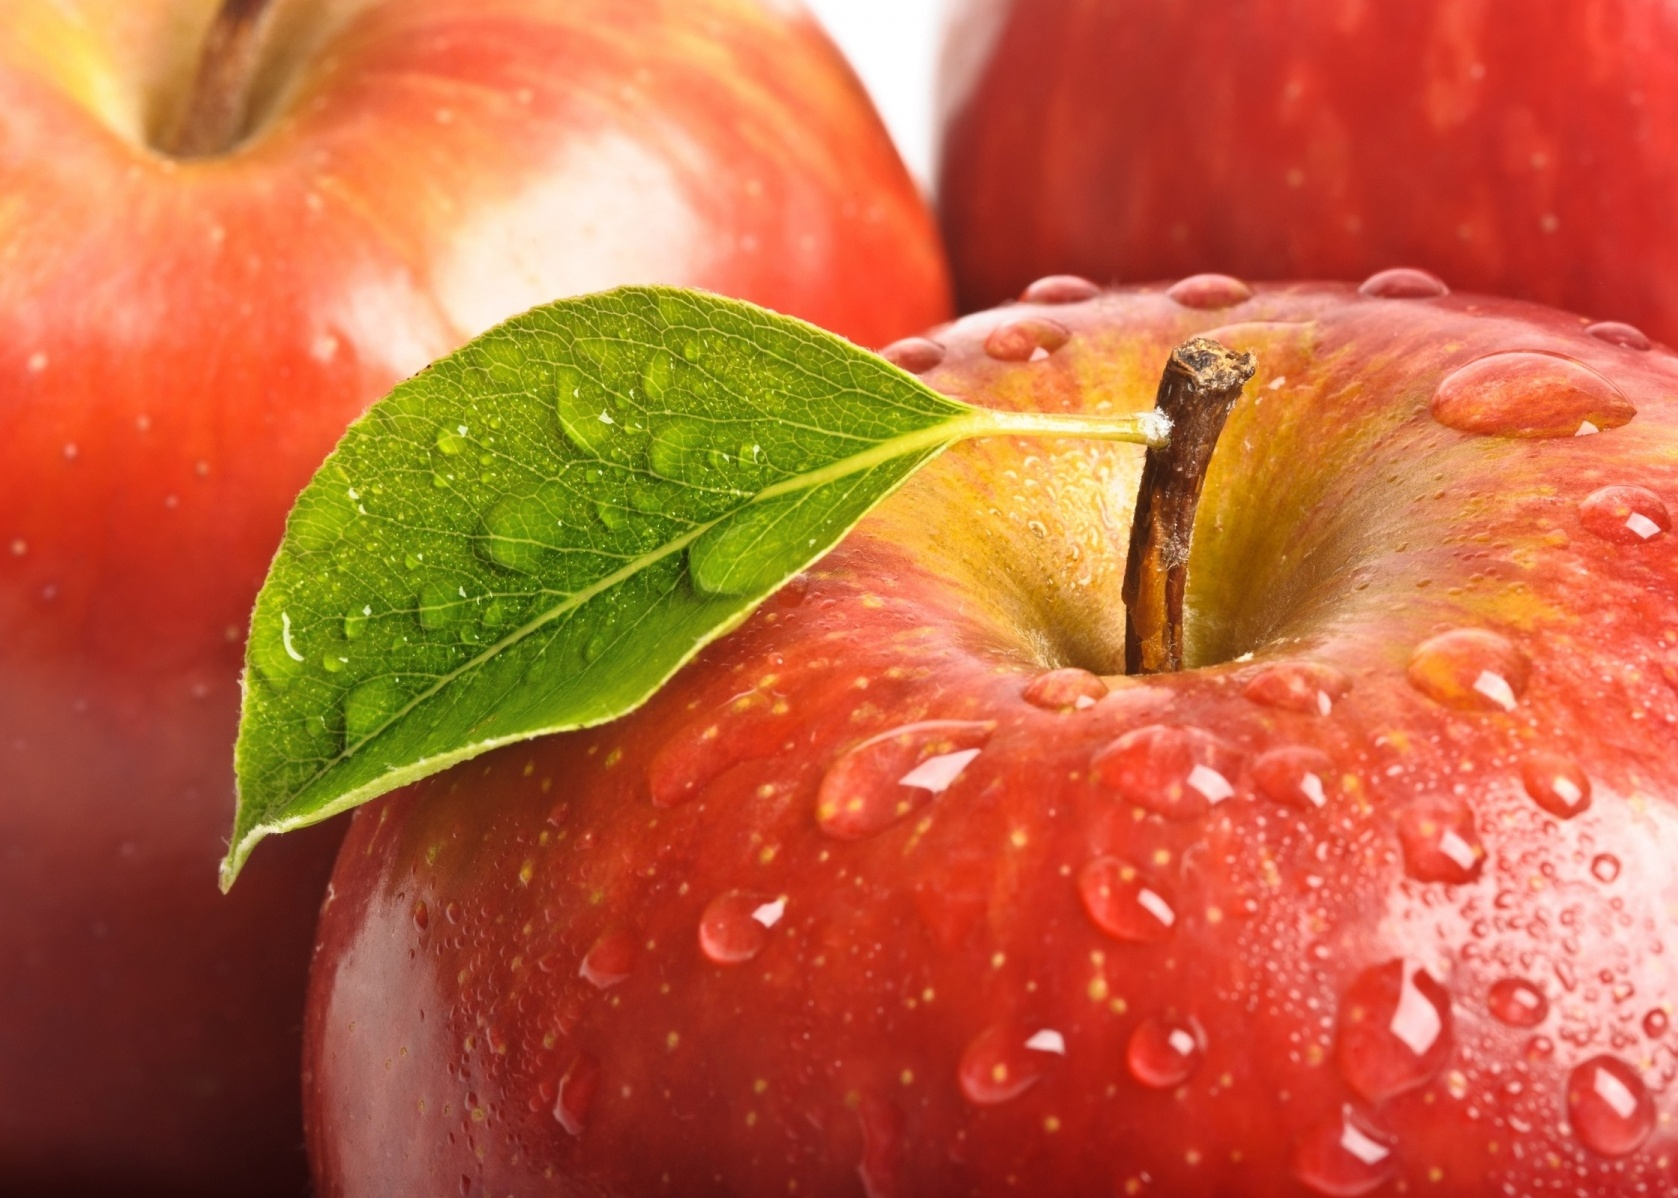 Fresh Apples Goods From Uzbekistan At Wholesale Prices